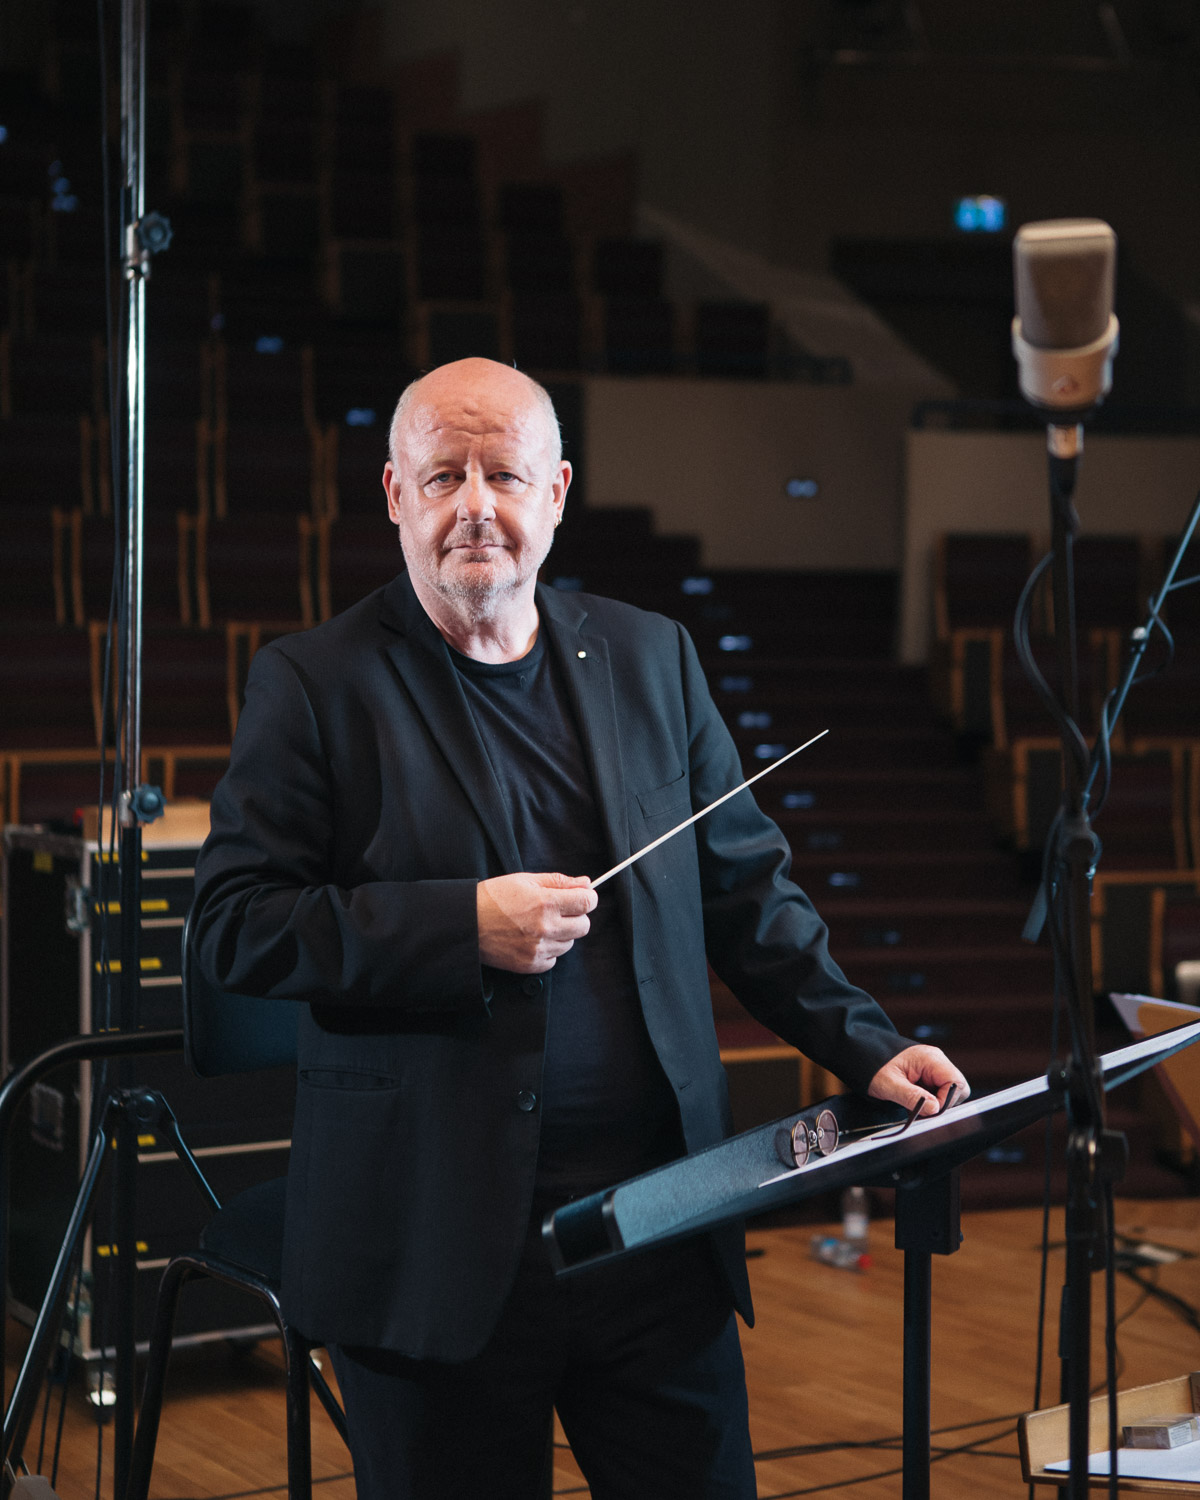 Gast Waltzing - On-location Portrait, Luxembourg Conservatoire